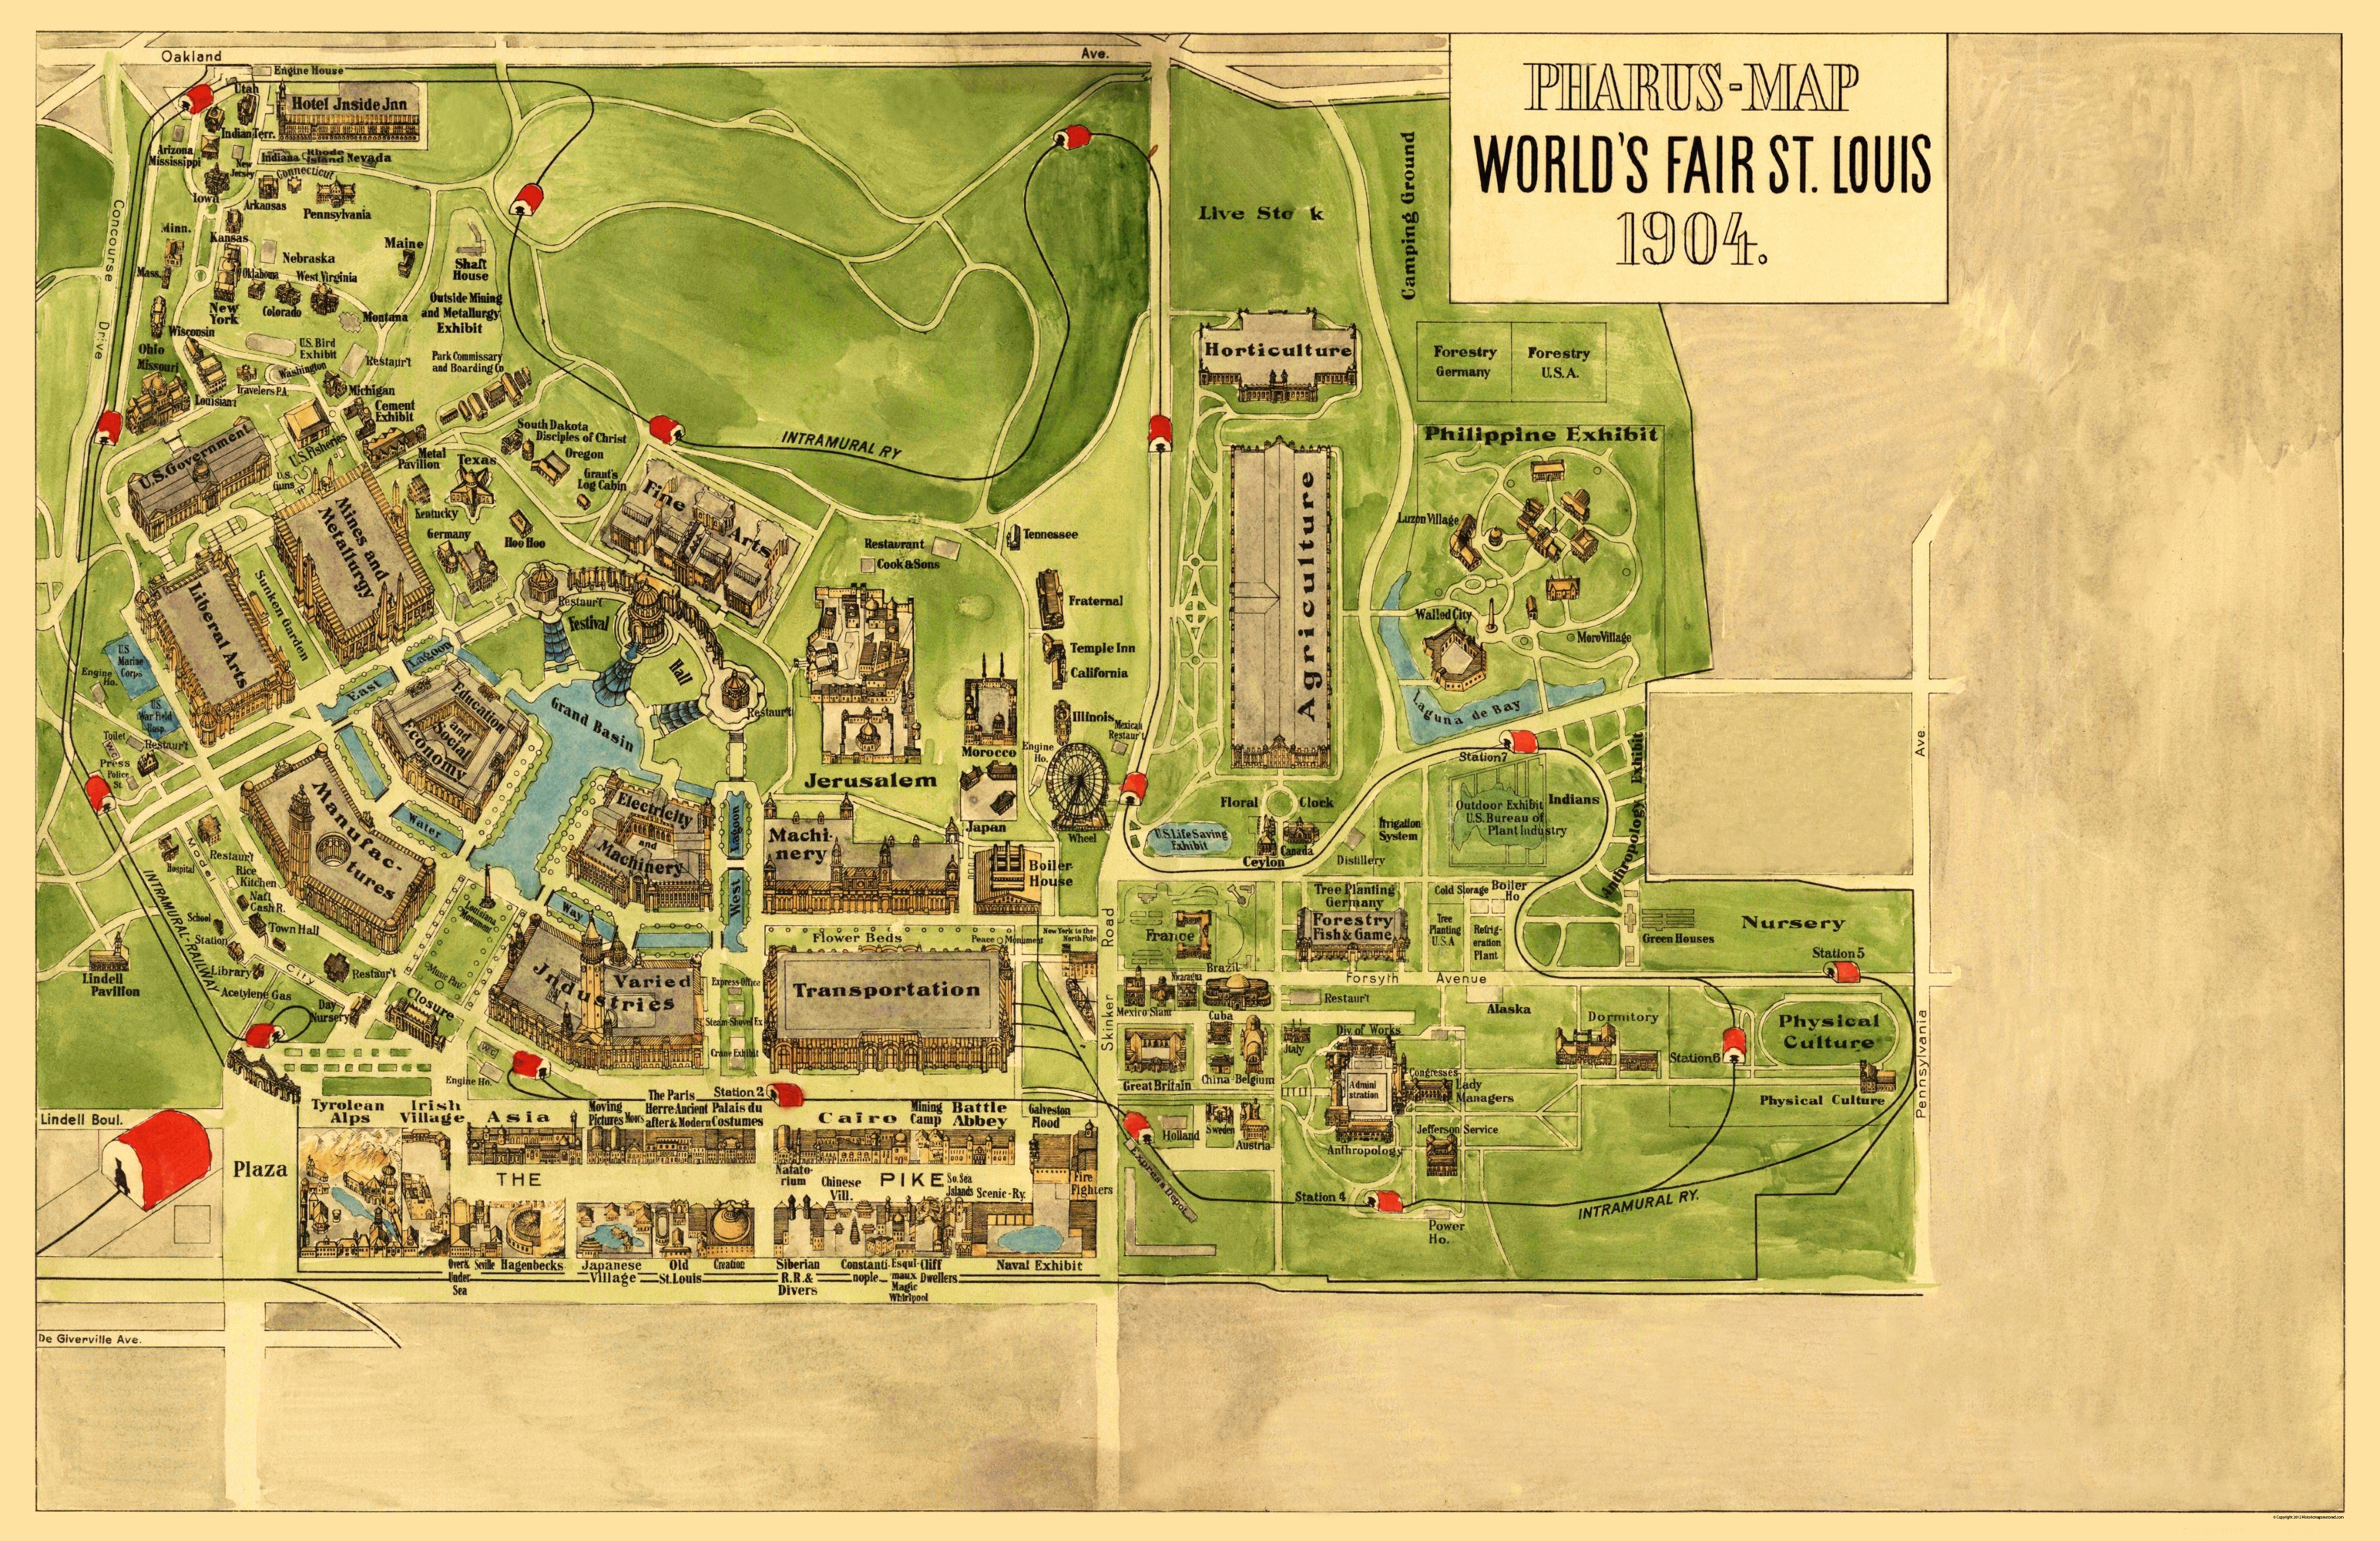 Old City Map St Louis Missouri Worlds Fair - Us map st louis mo